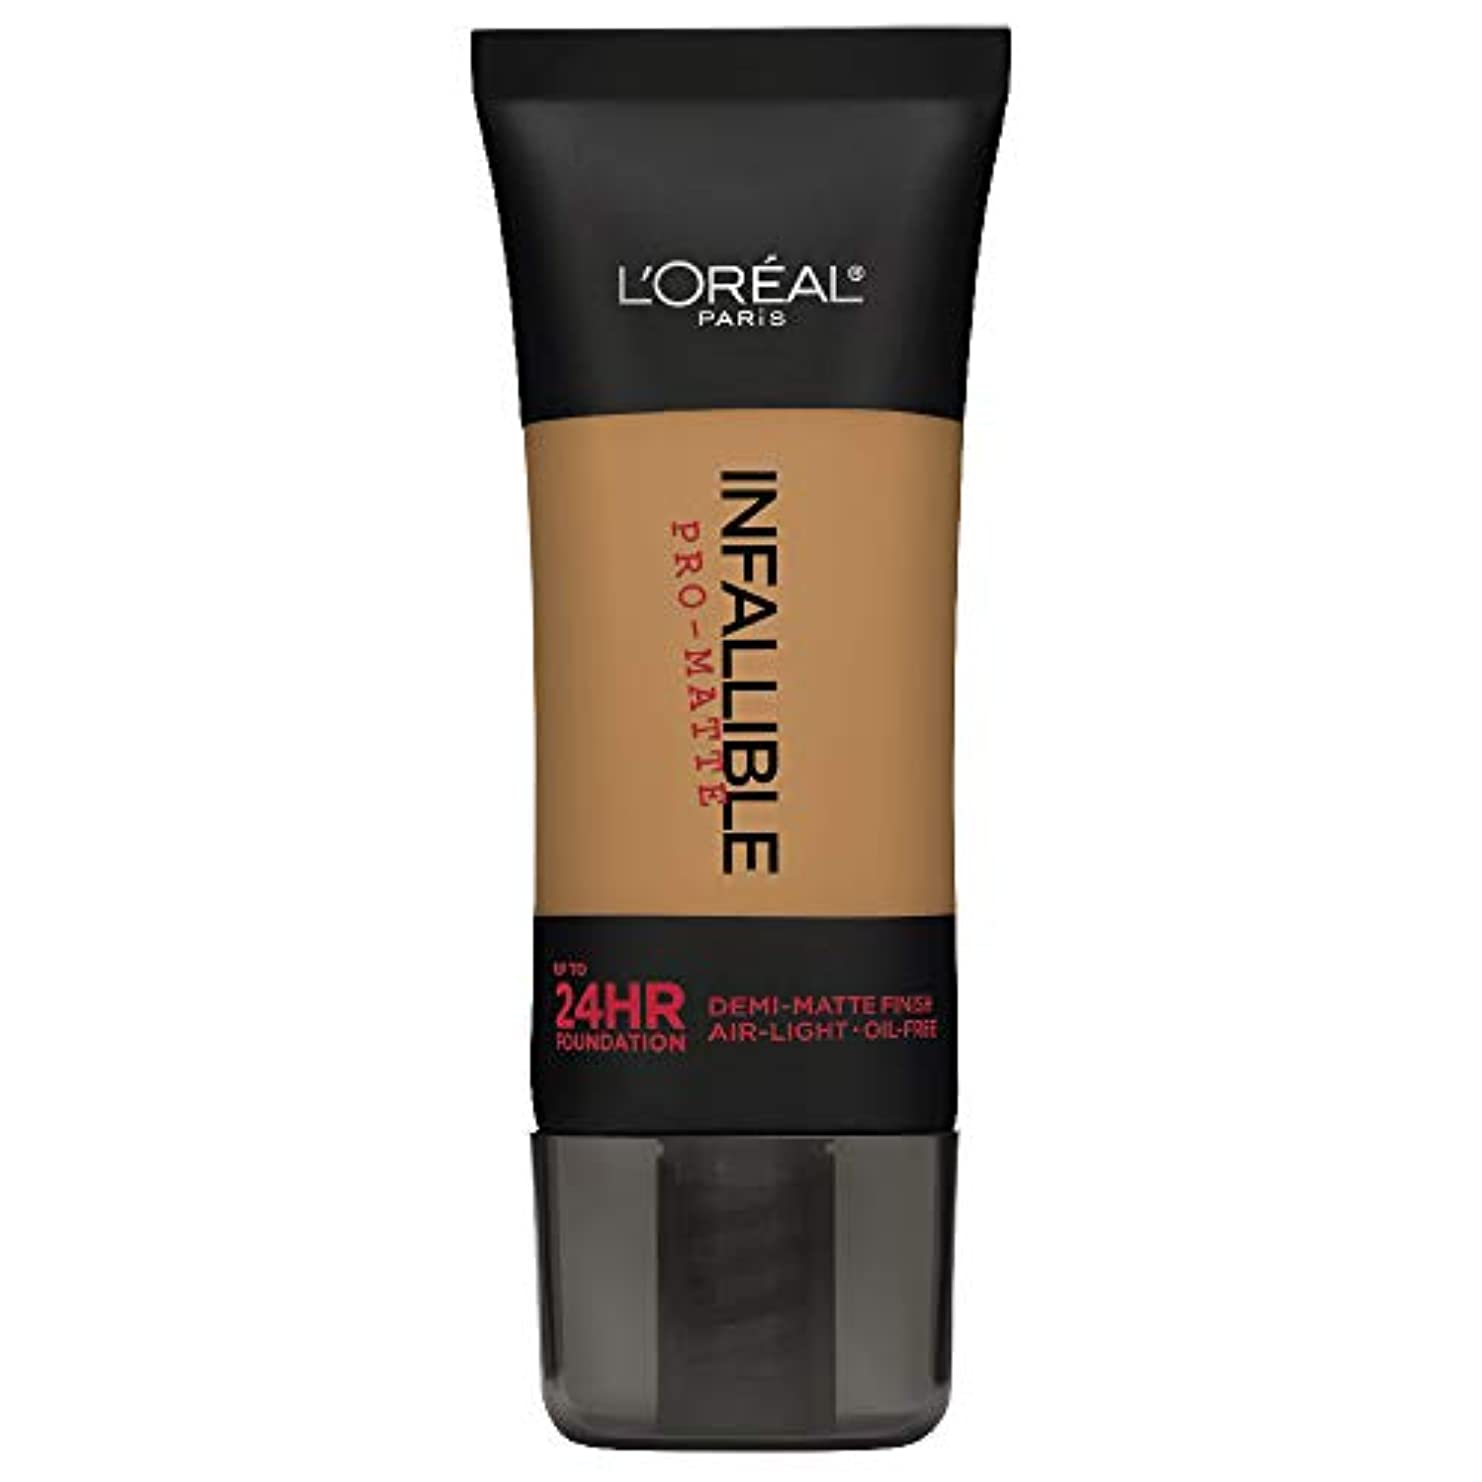 ブロッサムフェードアウト辛いL'Oreal Paris Infallible Pro-Matte Foundation Makeup, 108 Caramel Beige, 1 fl. oz[並行輸入品]